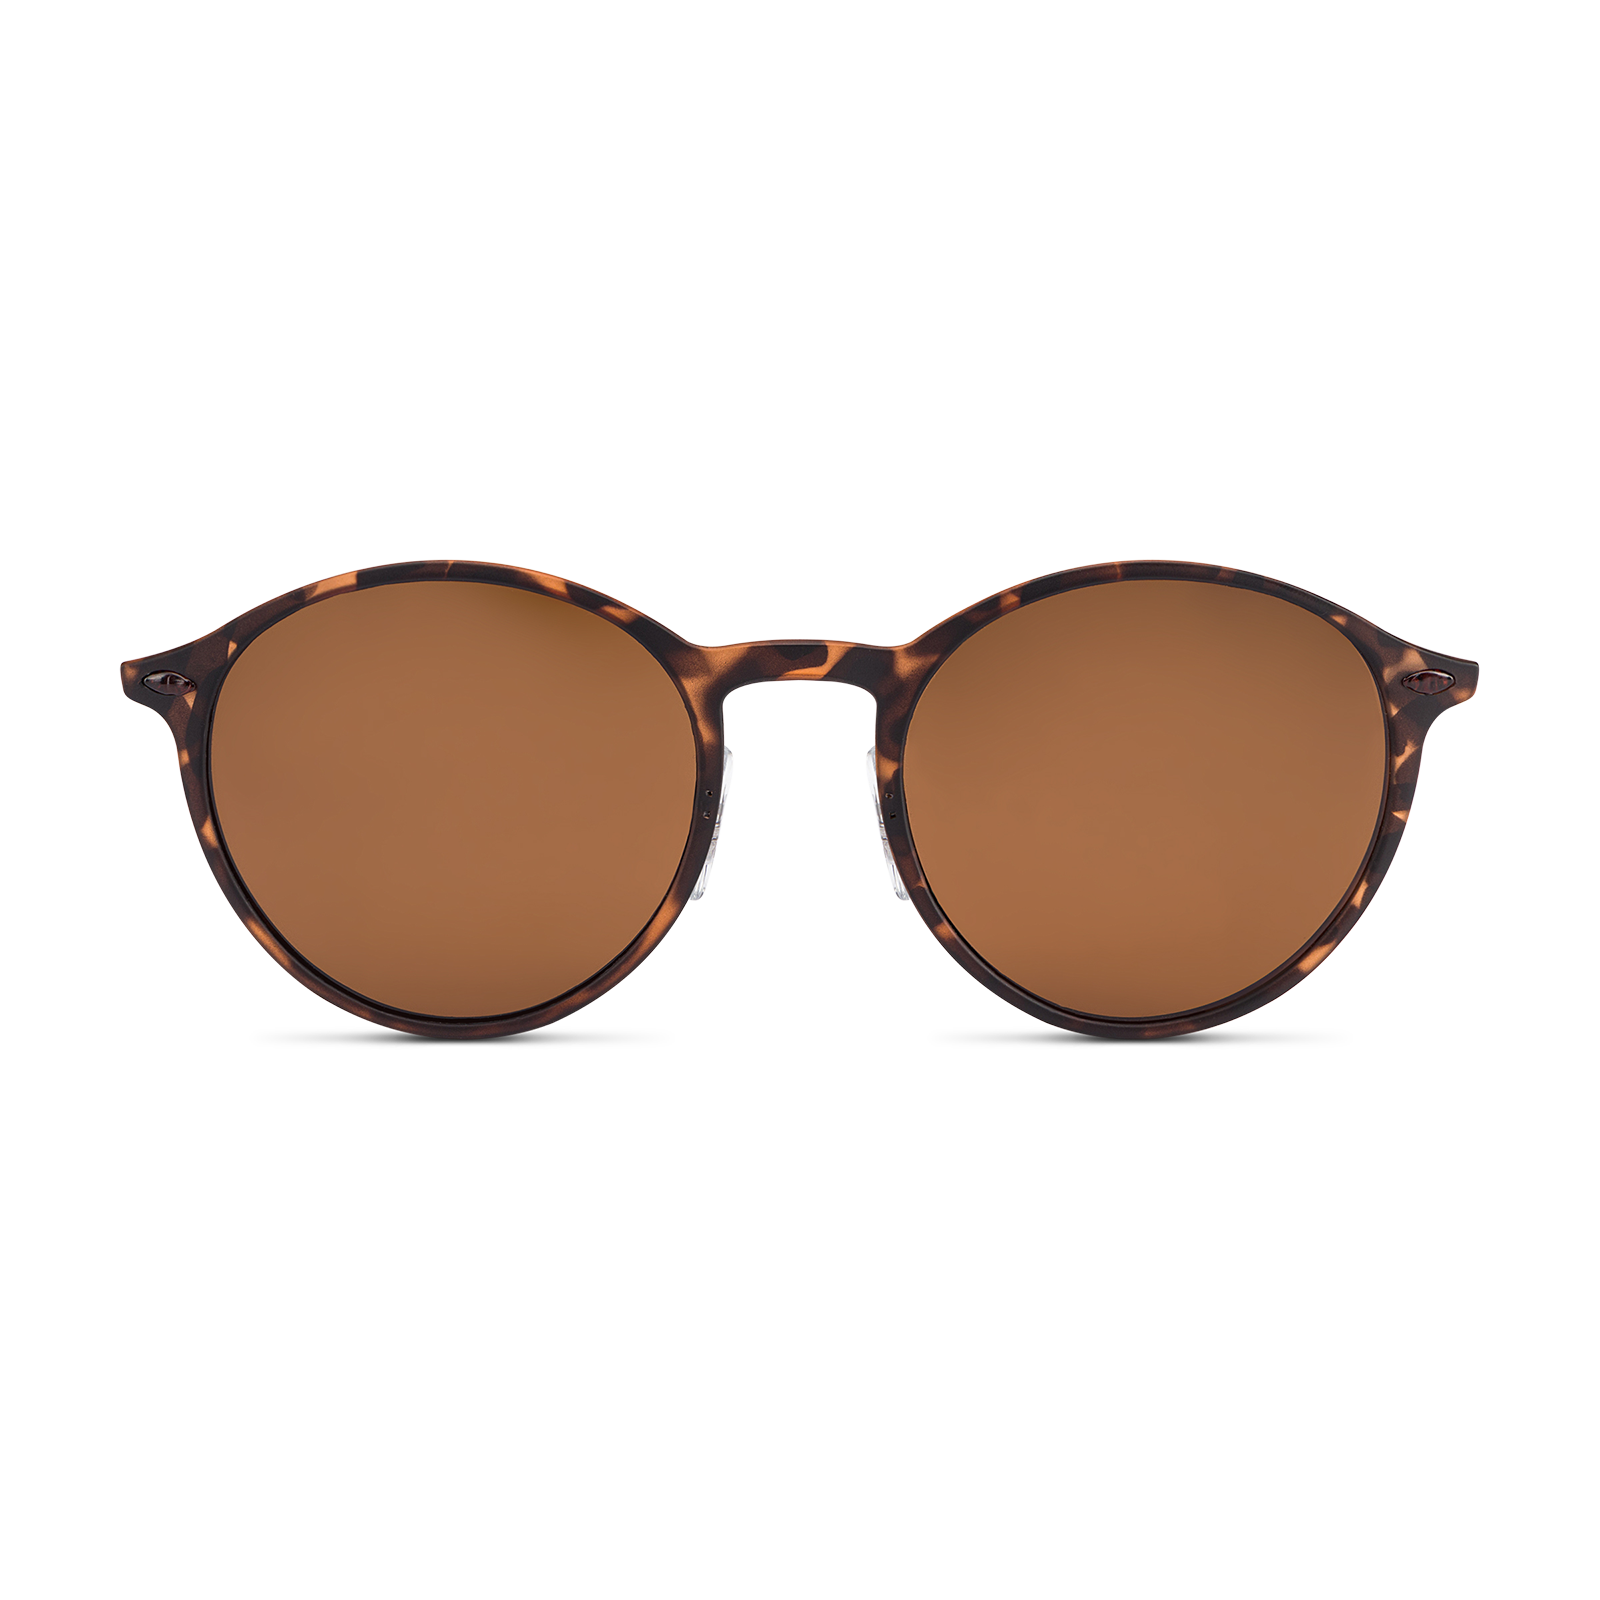 Sunglasses product picture